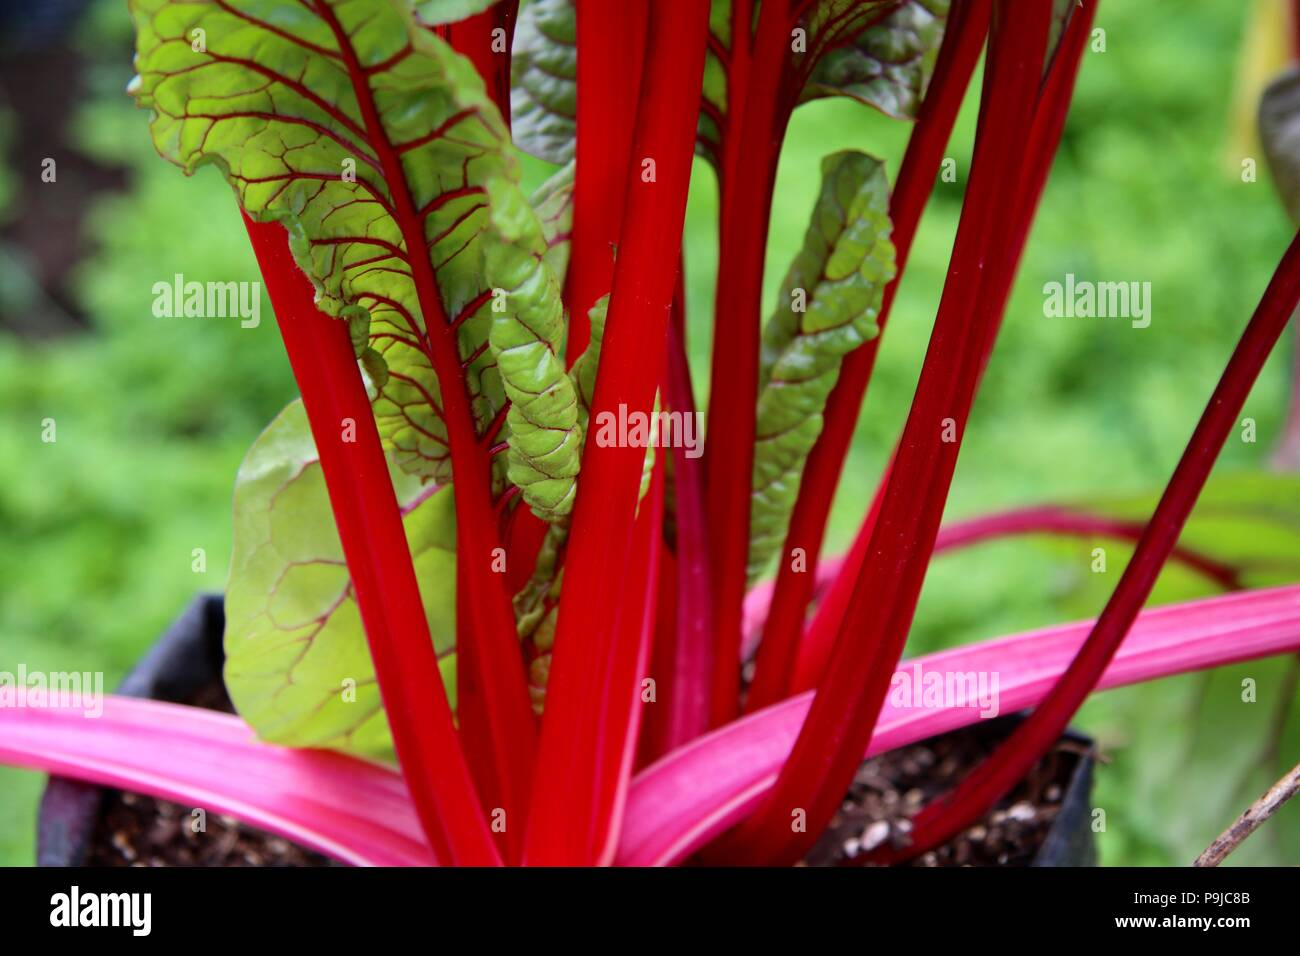 Organic red stemmed chard / silverbeet growing at an organic farm - Stock Image